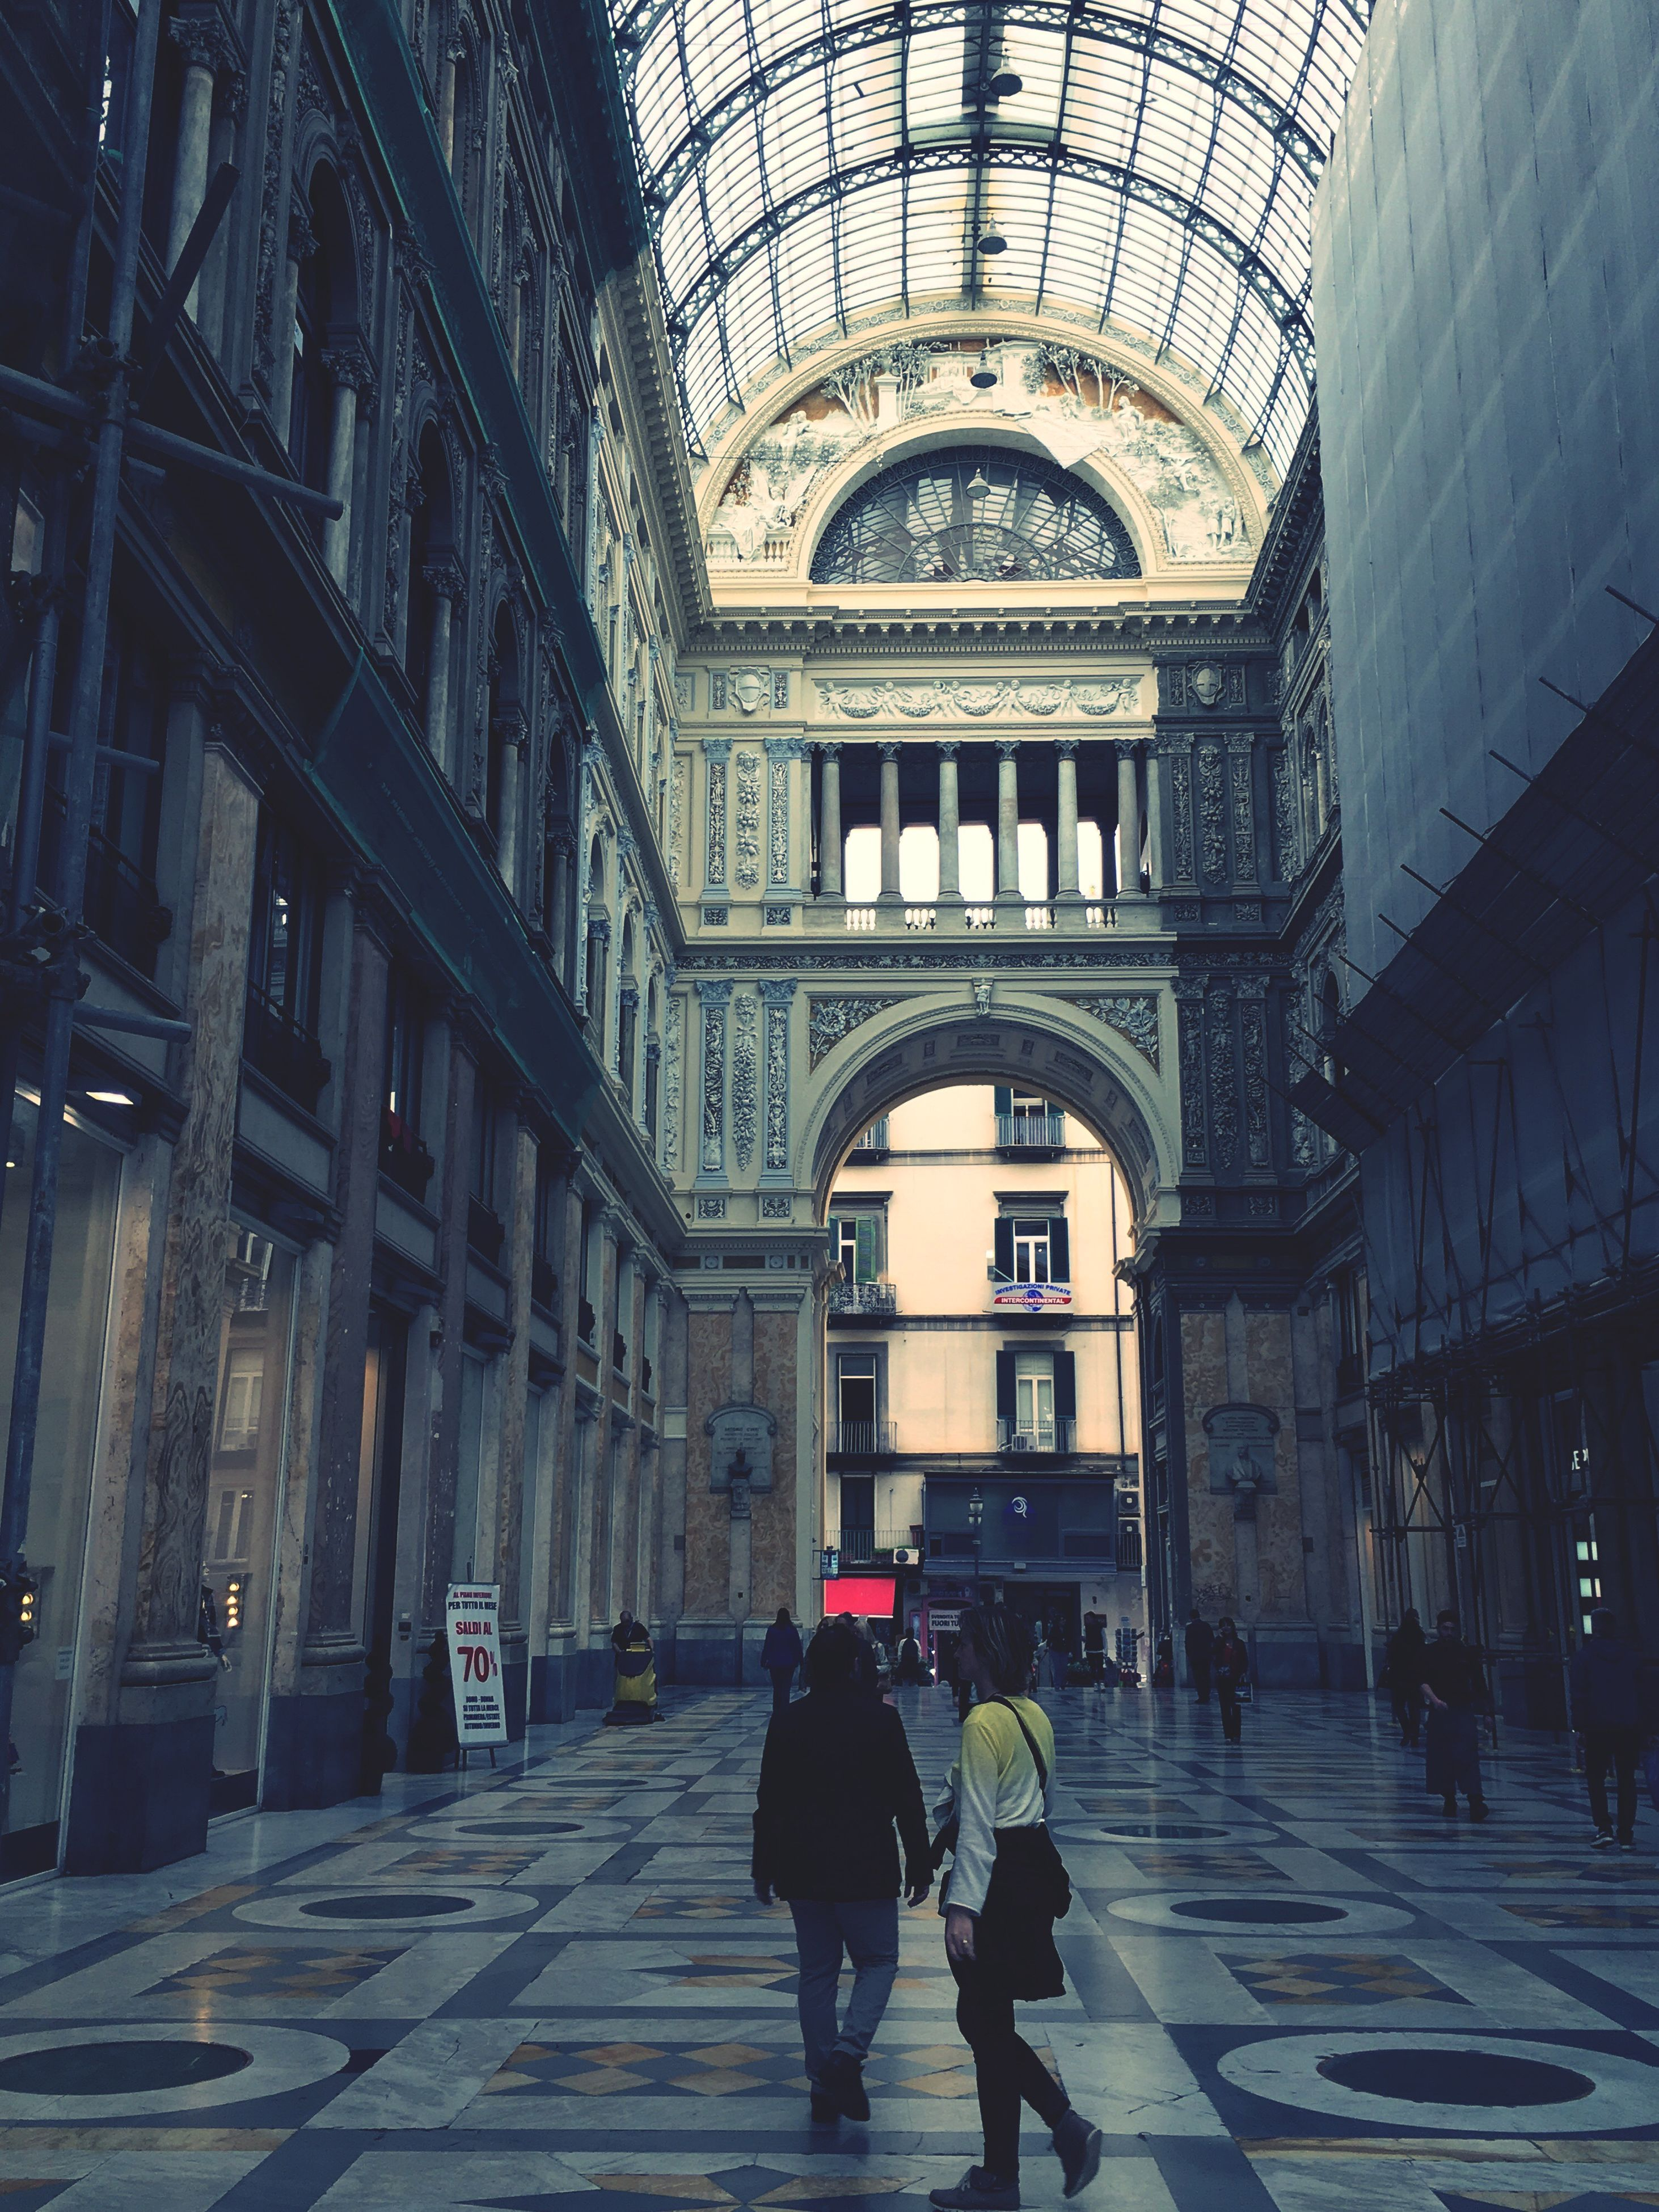 architecture, built structure, walking, men, lifestyles, full length, indoors, building exterior, person, the way forward, rear view, arch, leisure activity, building, city life, city, corridor